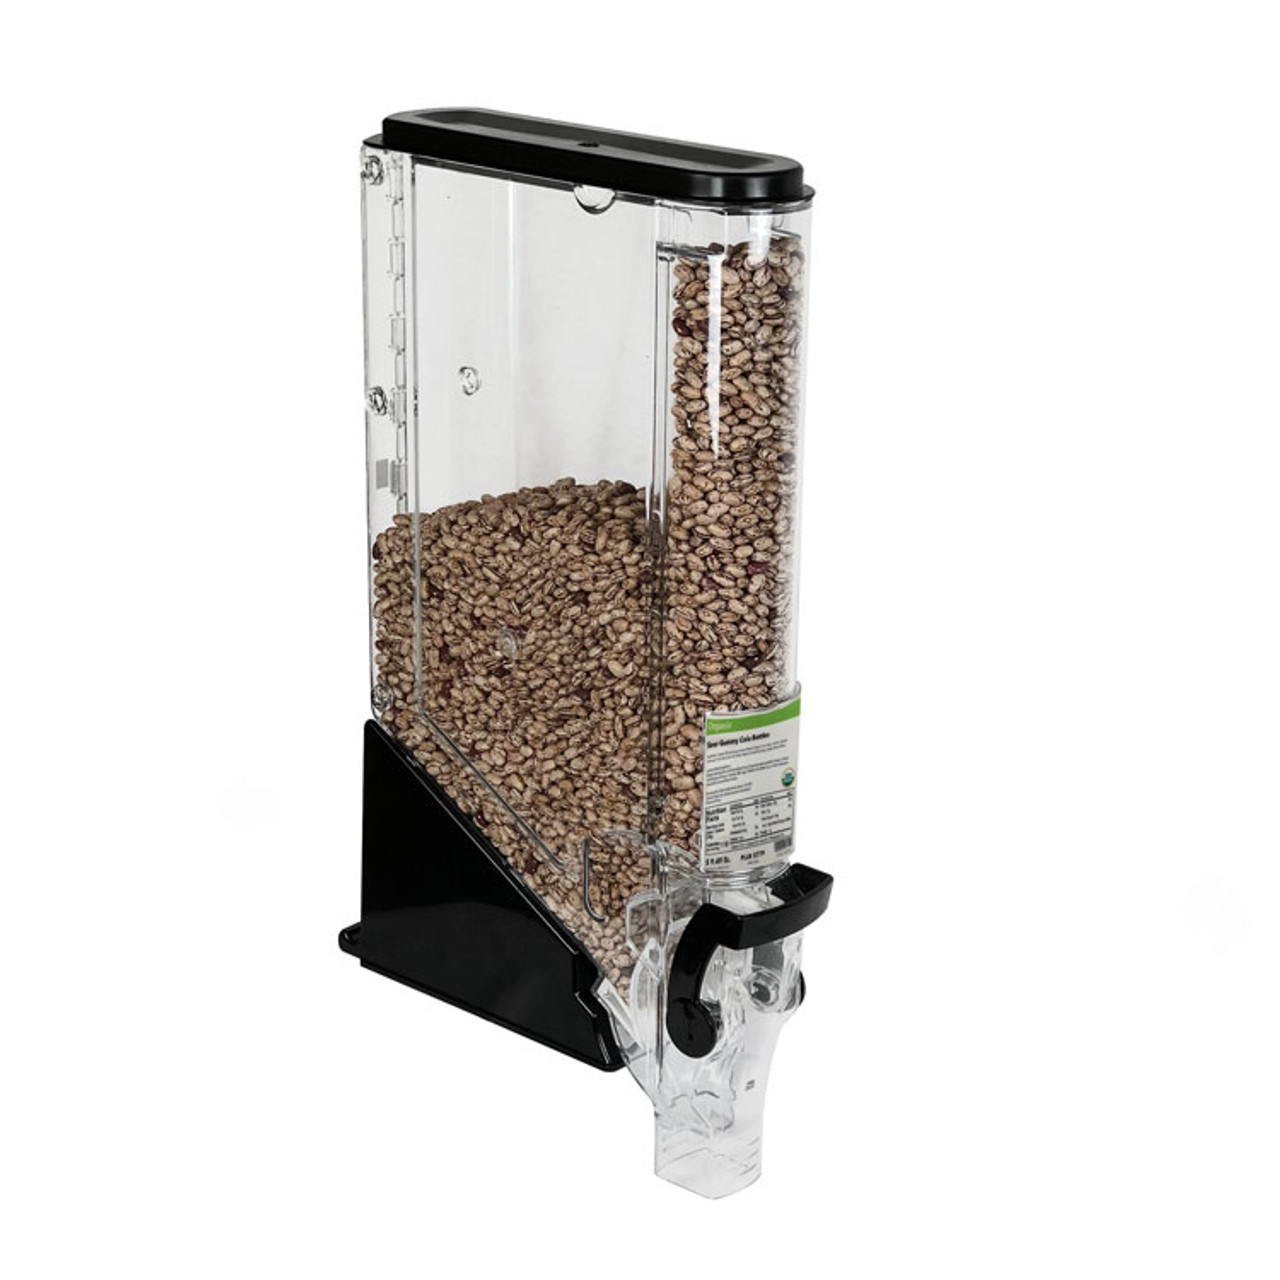 Gravity Bins For Sale Dry Food Dispensers Dgs Retail